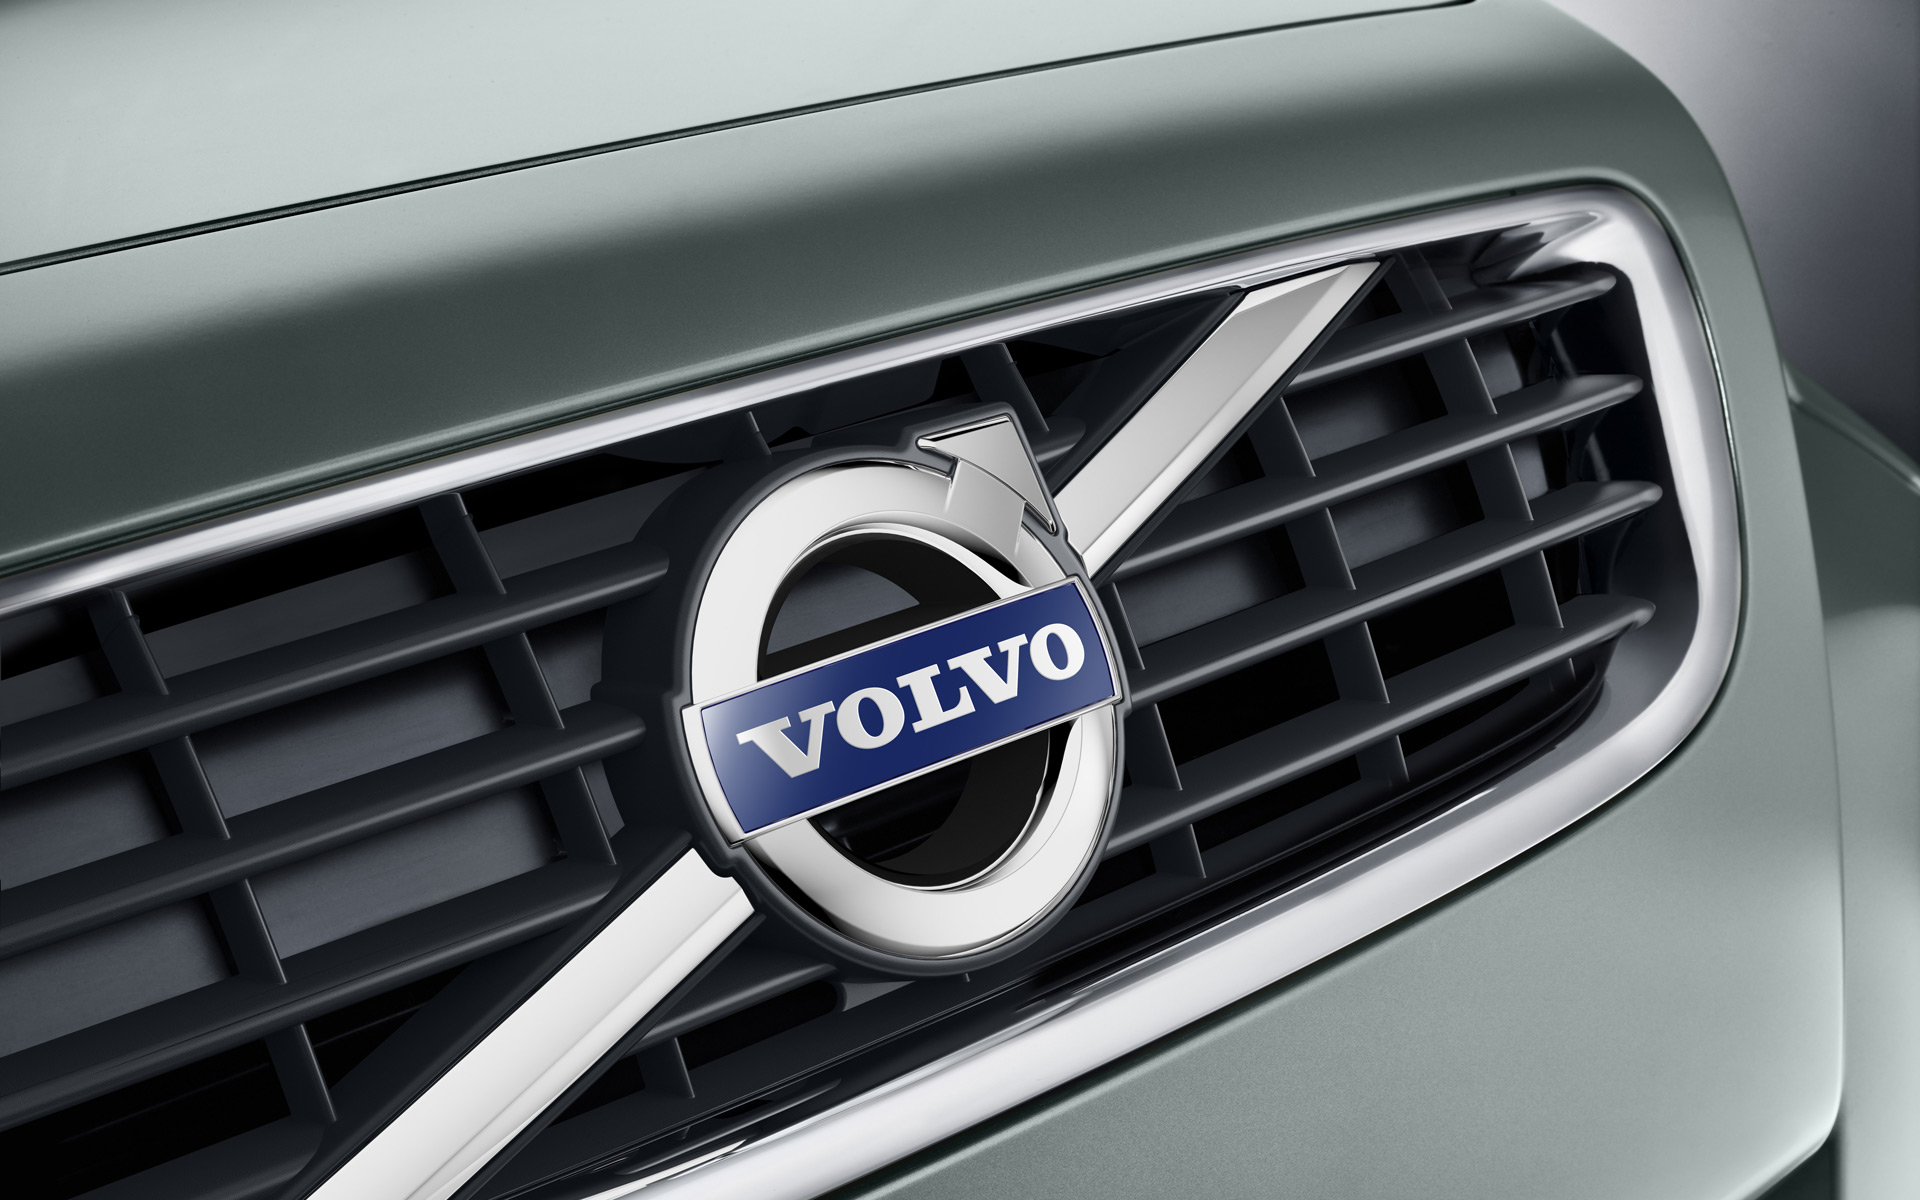 volvo logo, volvo car symbol meaning and history | car brand names